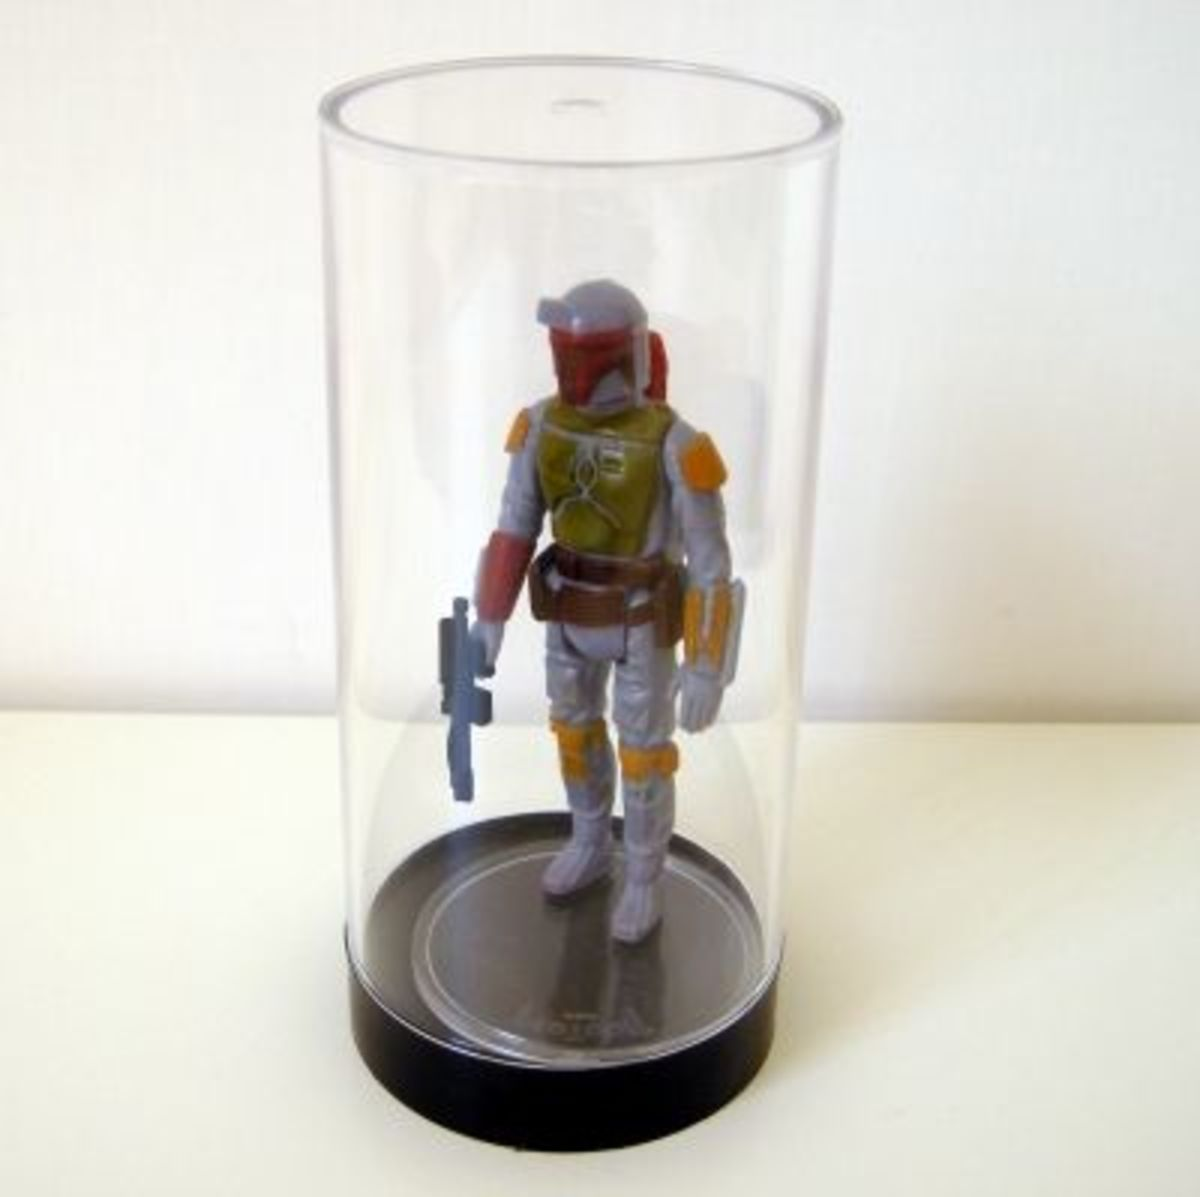 Protech display case for vintage Star Wars figures